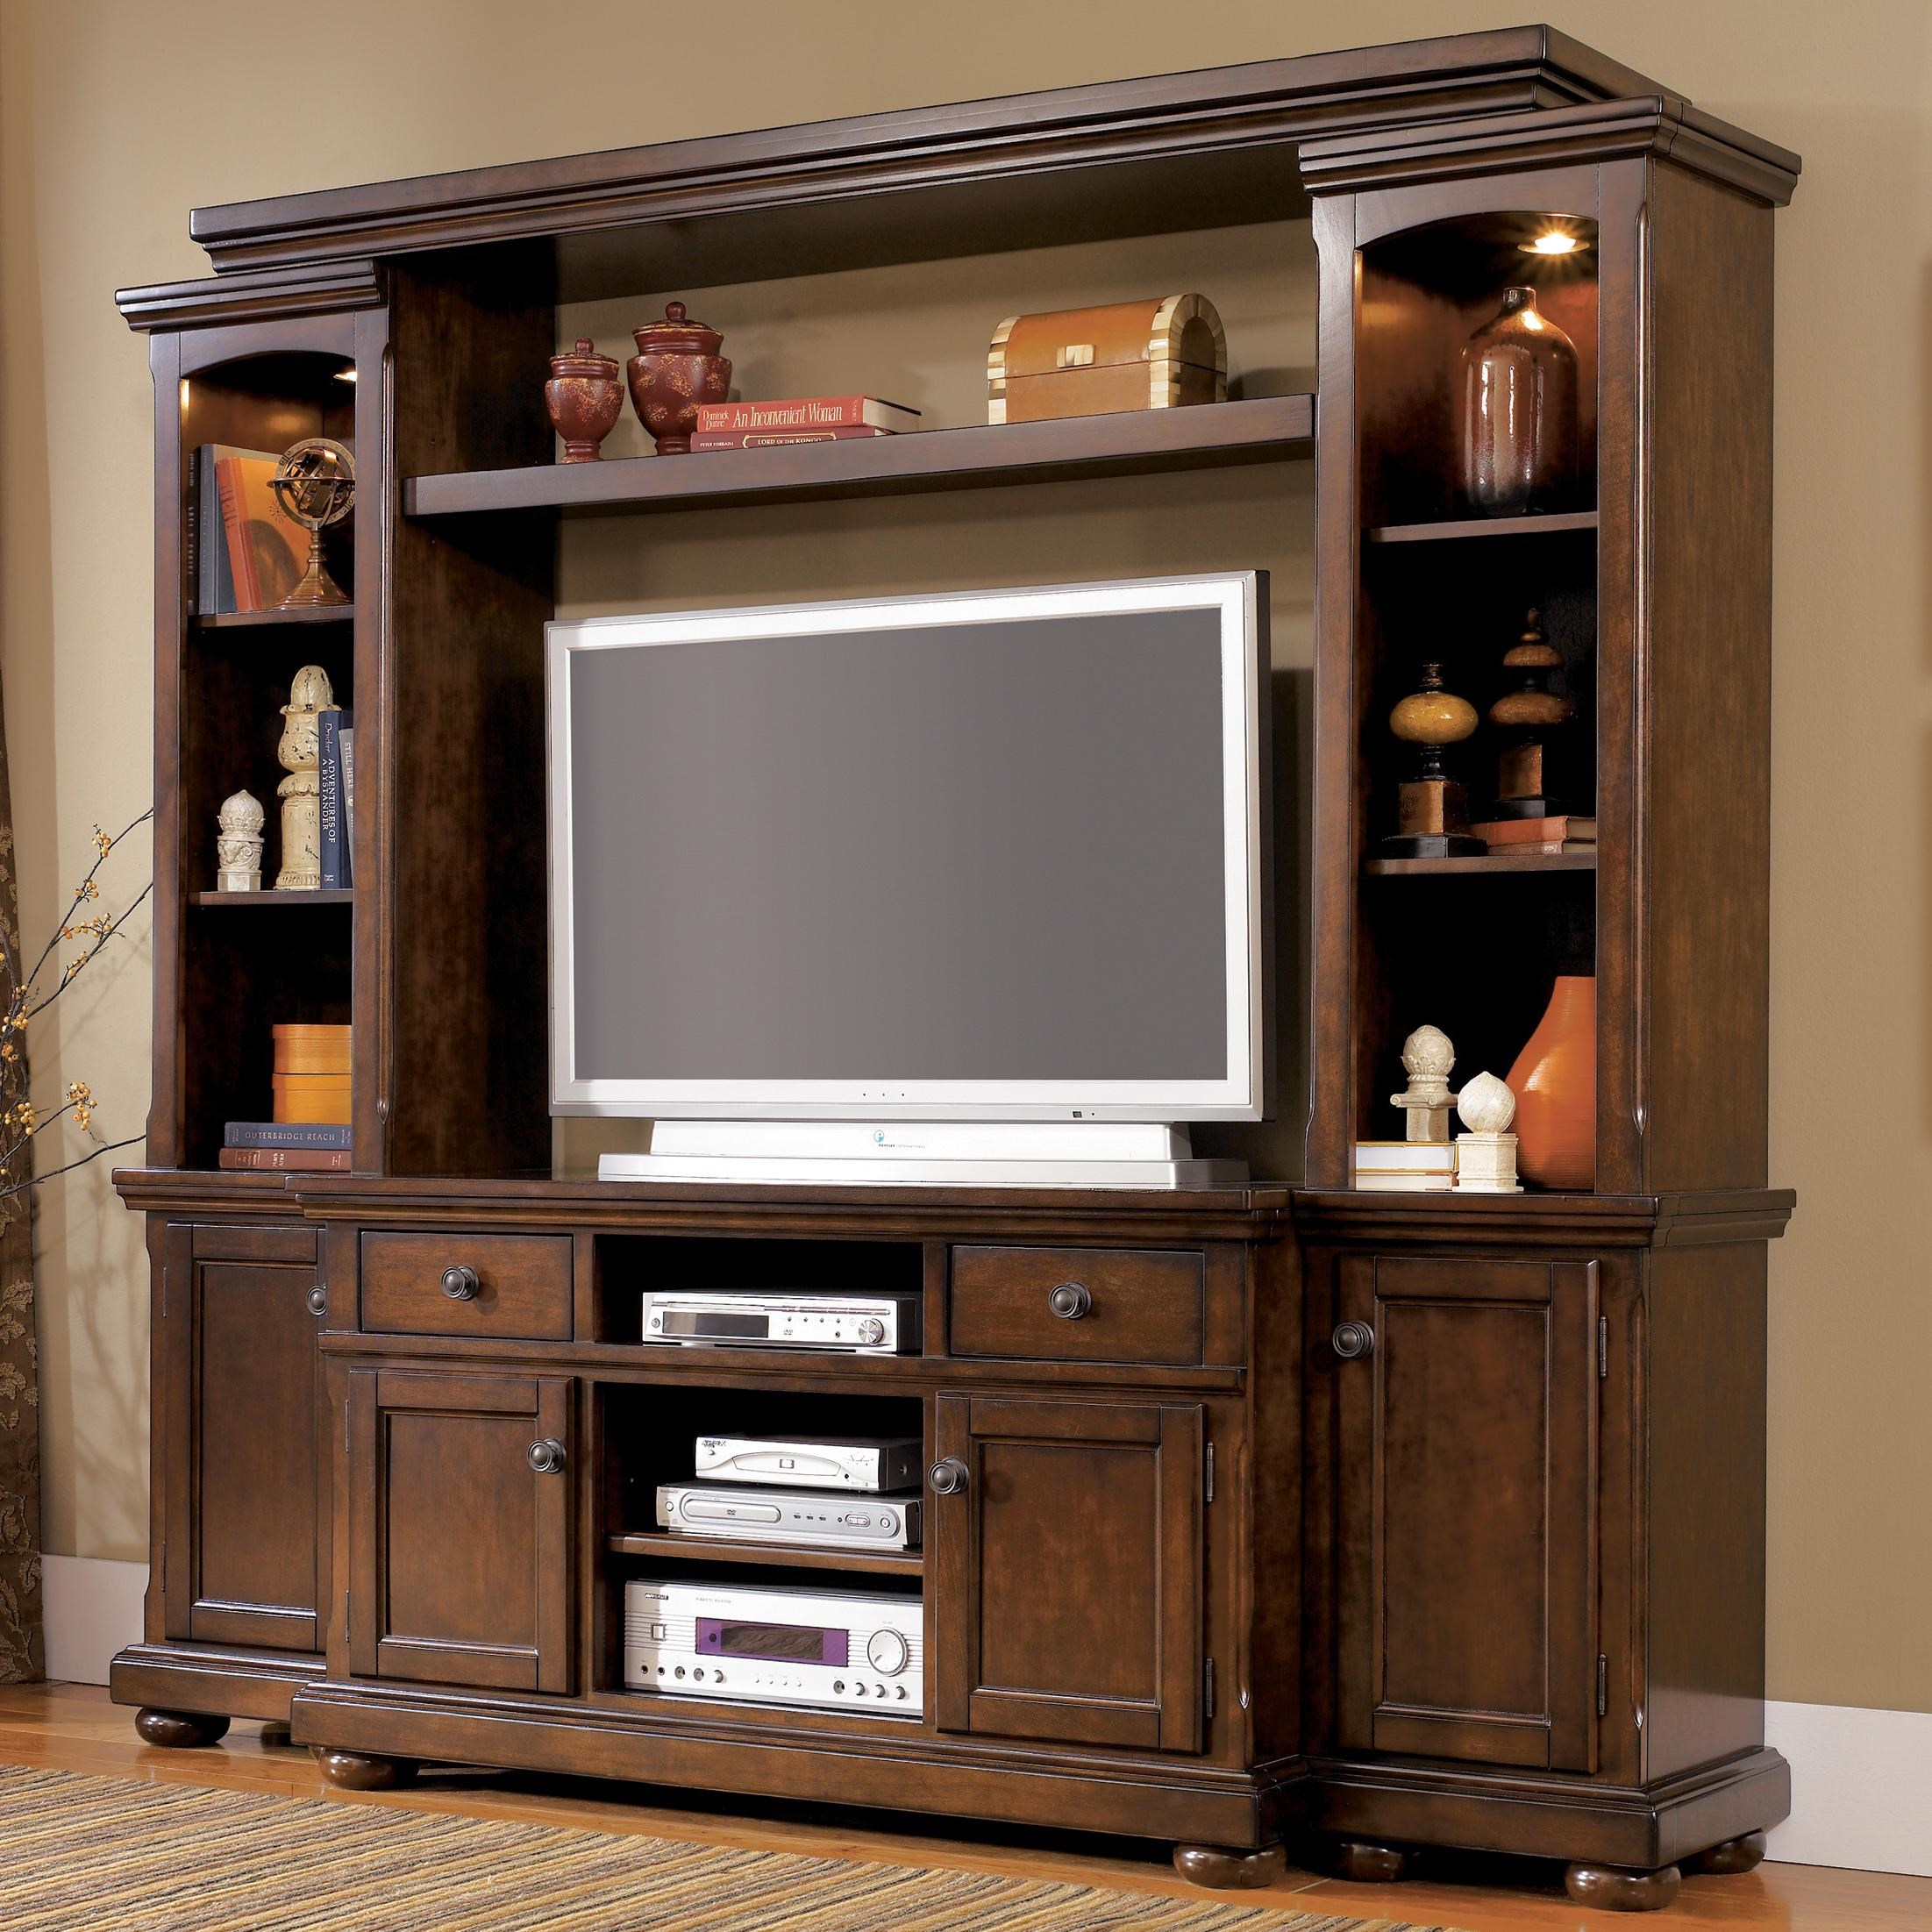 Ashley Furniture Porter House Entertainment Wall Unit with TV Stand, Piers, Bridge, and Shelf ...